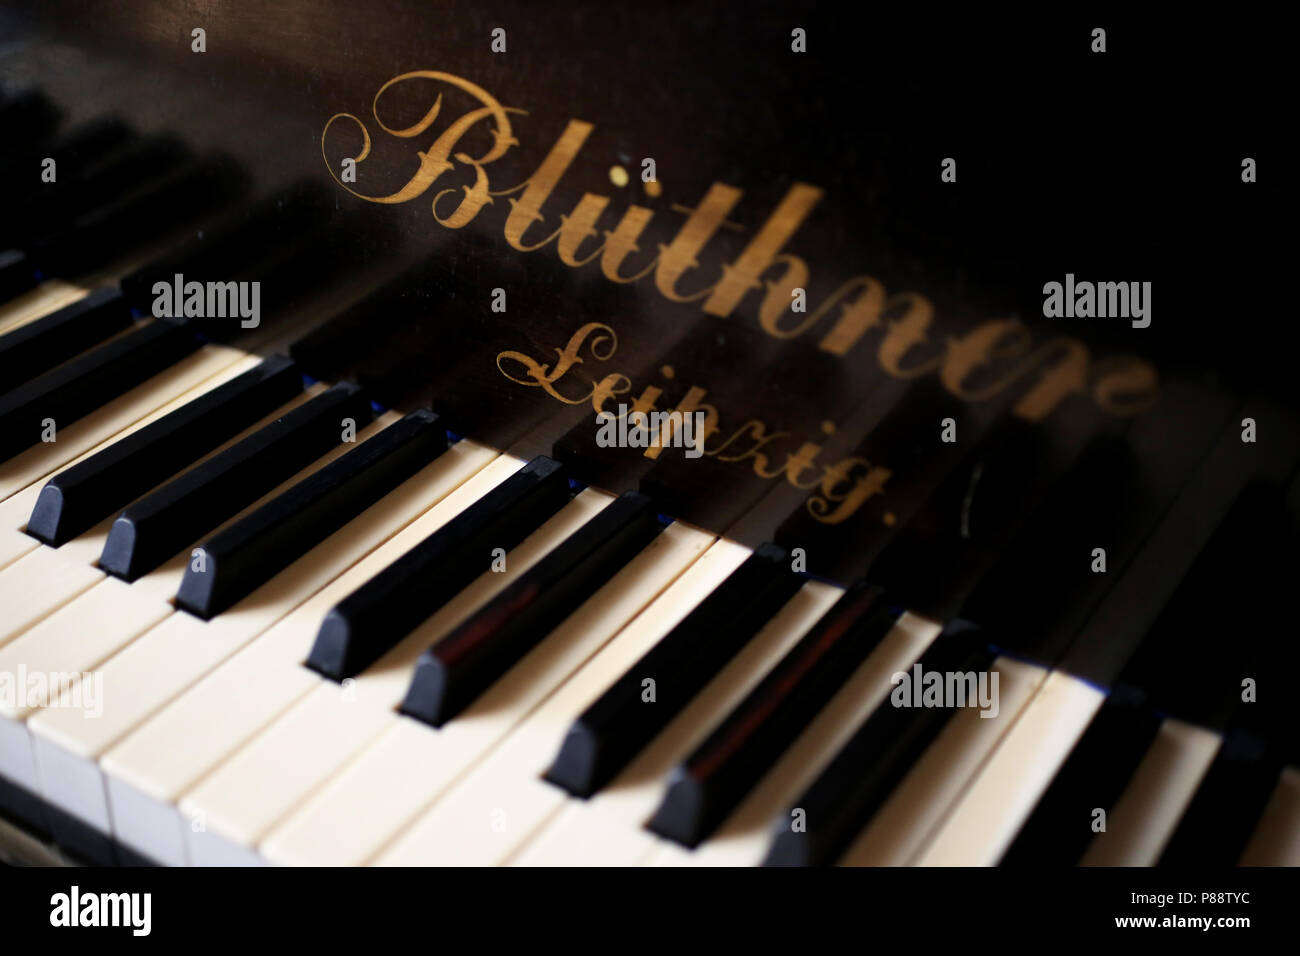 musical instrument manufacturers stock photos musical instrument manufacturers stock images. Black Bedroom Furniture Sets. Home Design Ideas